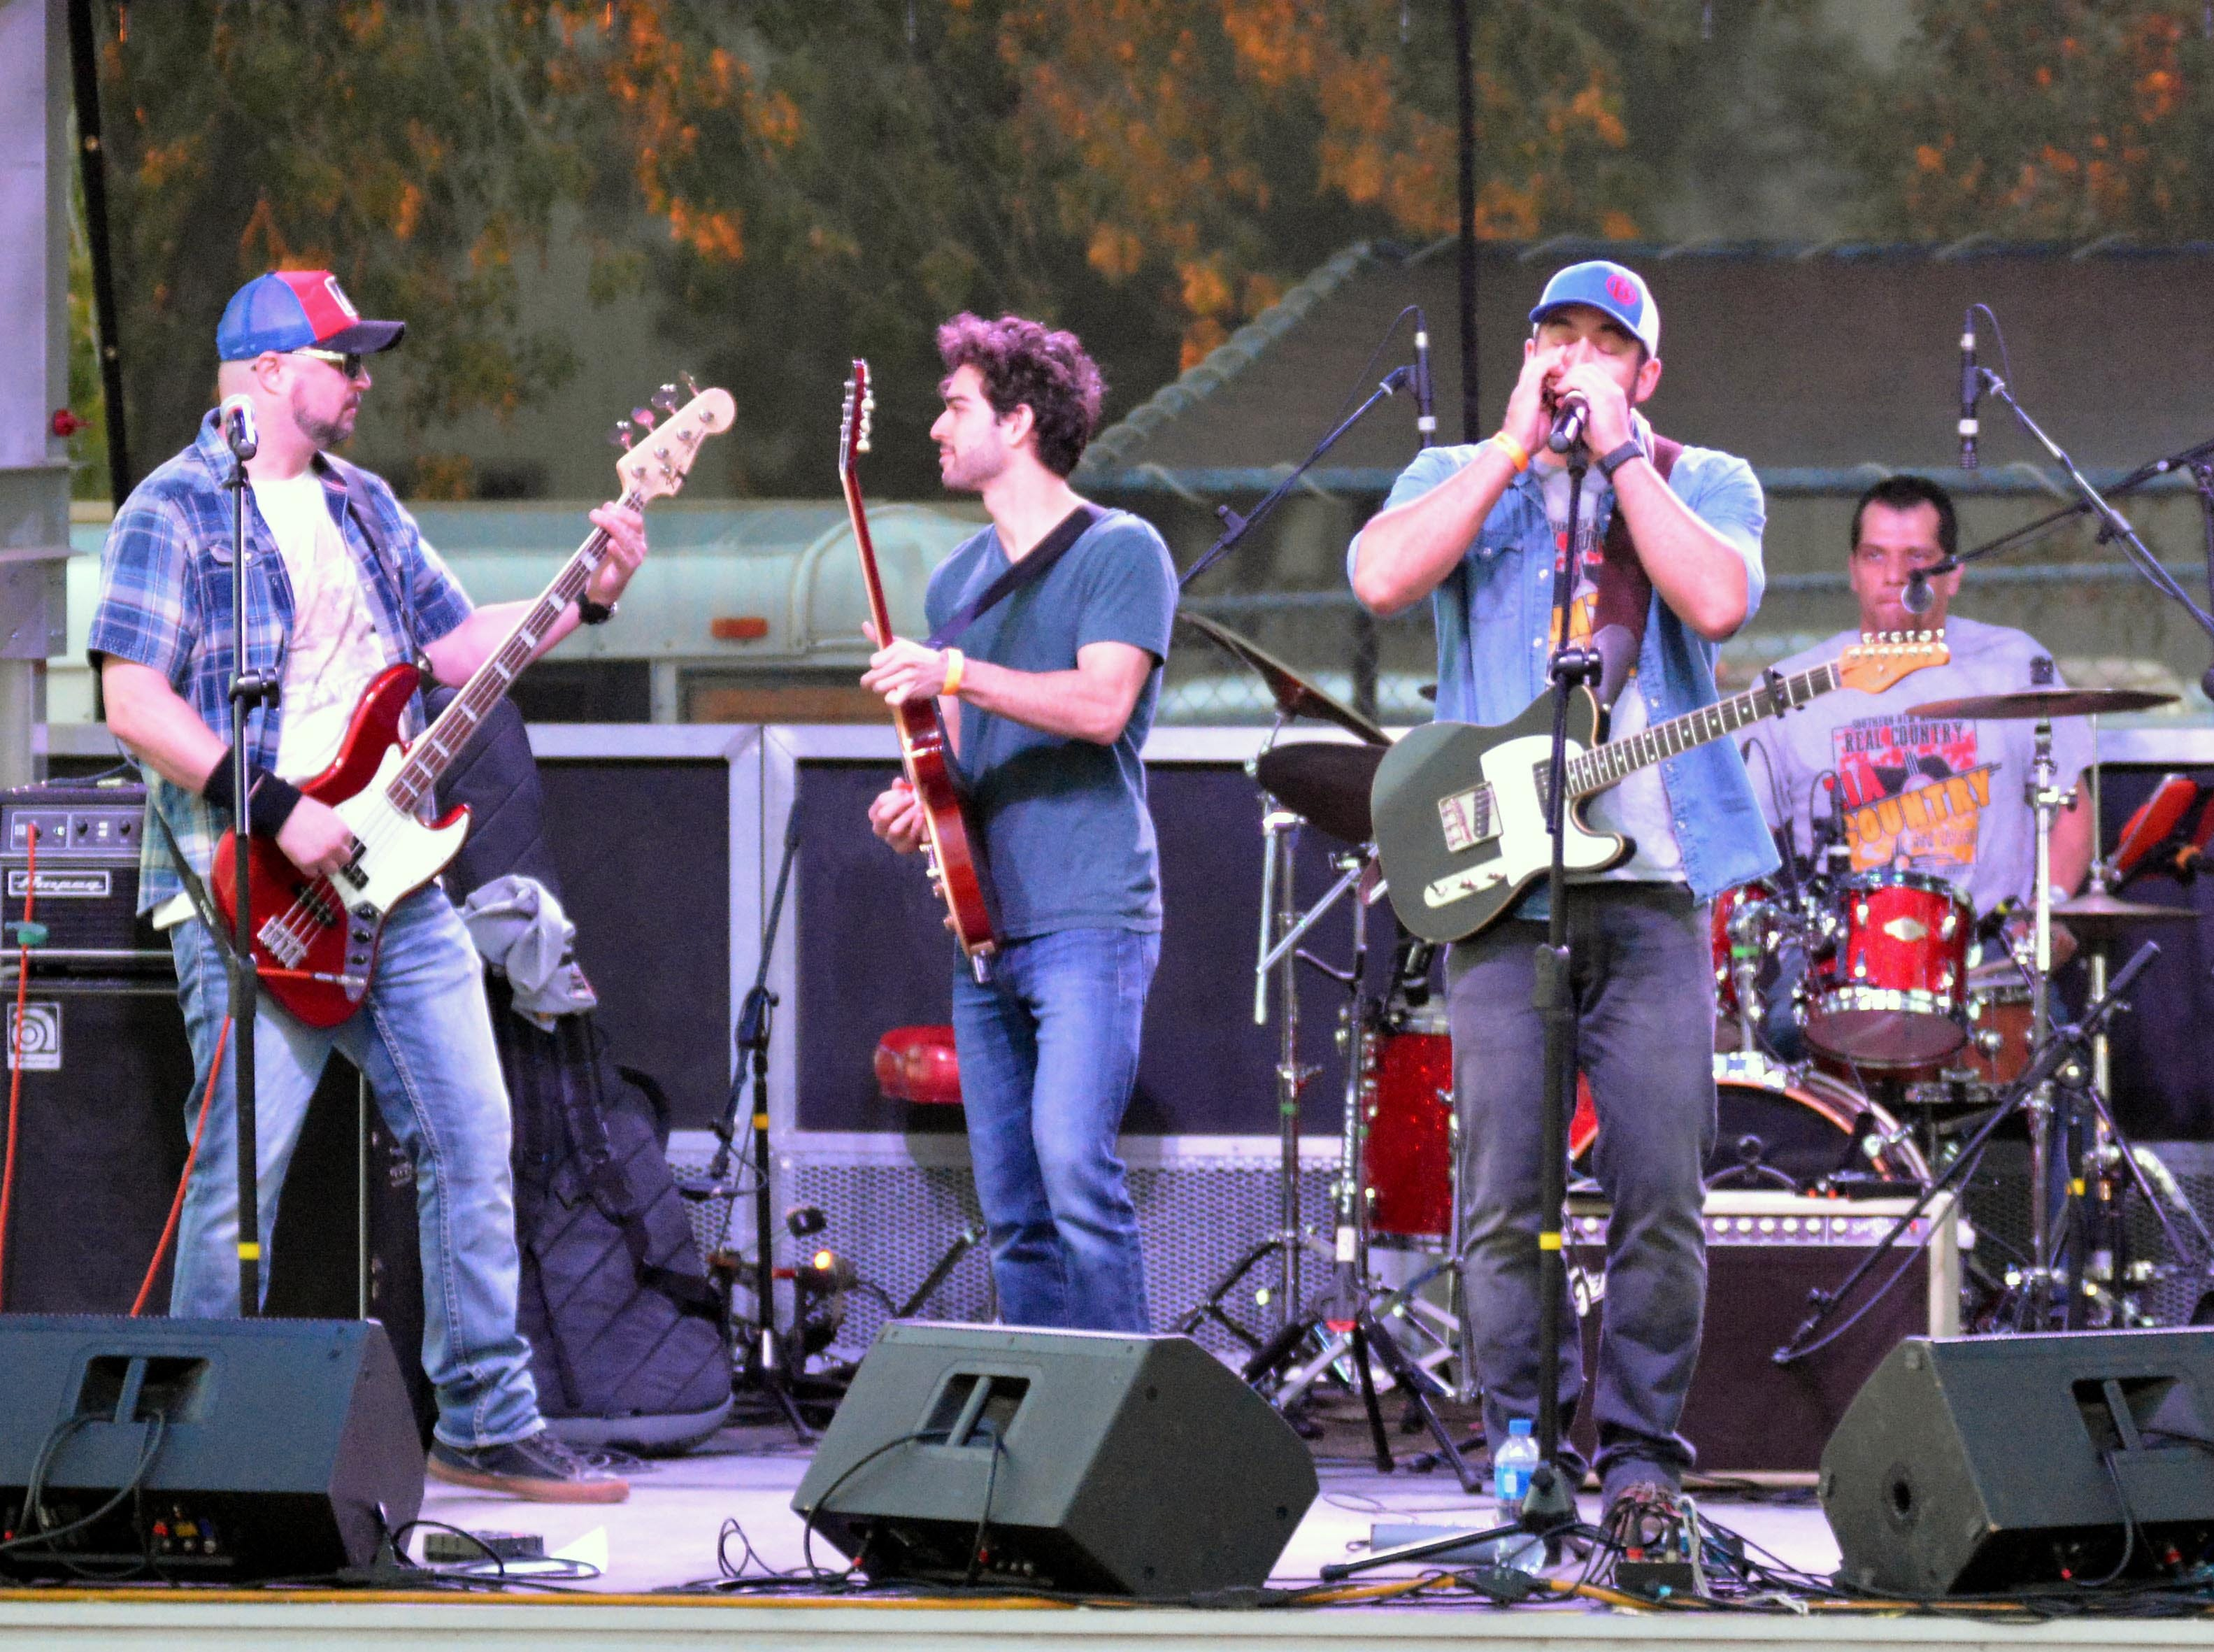 The Chris Baker Band, of Las Cruces, performs at the Las Cruces Country Music Festival on Saturday, Oct. 20, 2018.